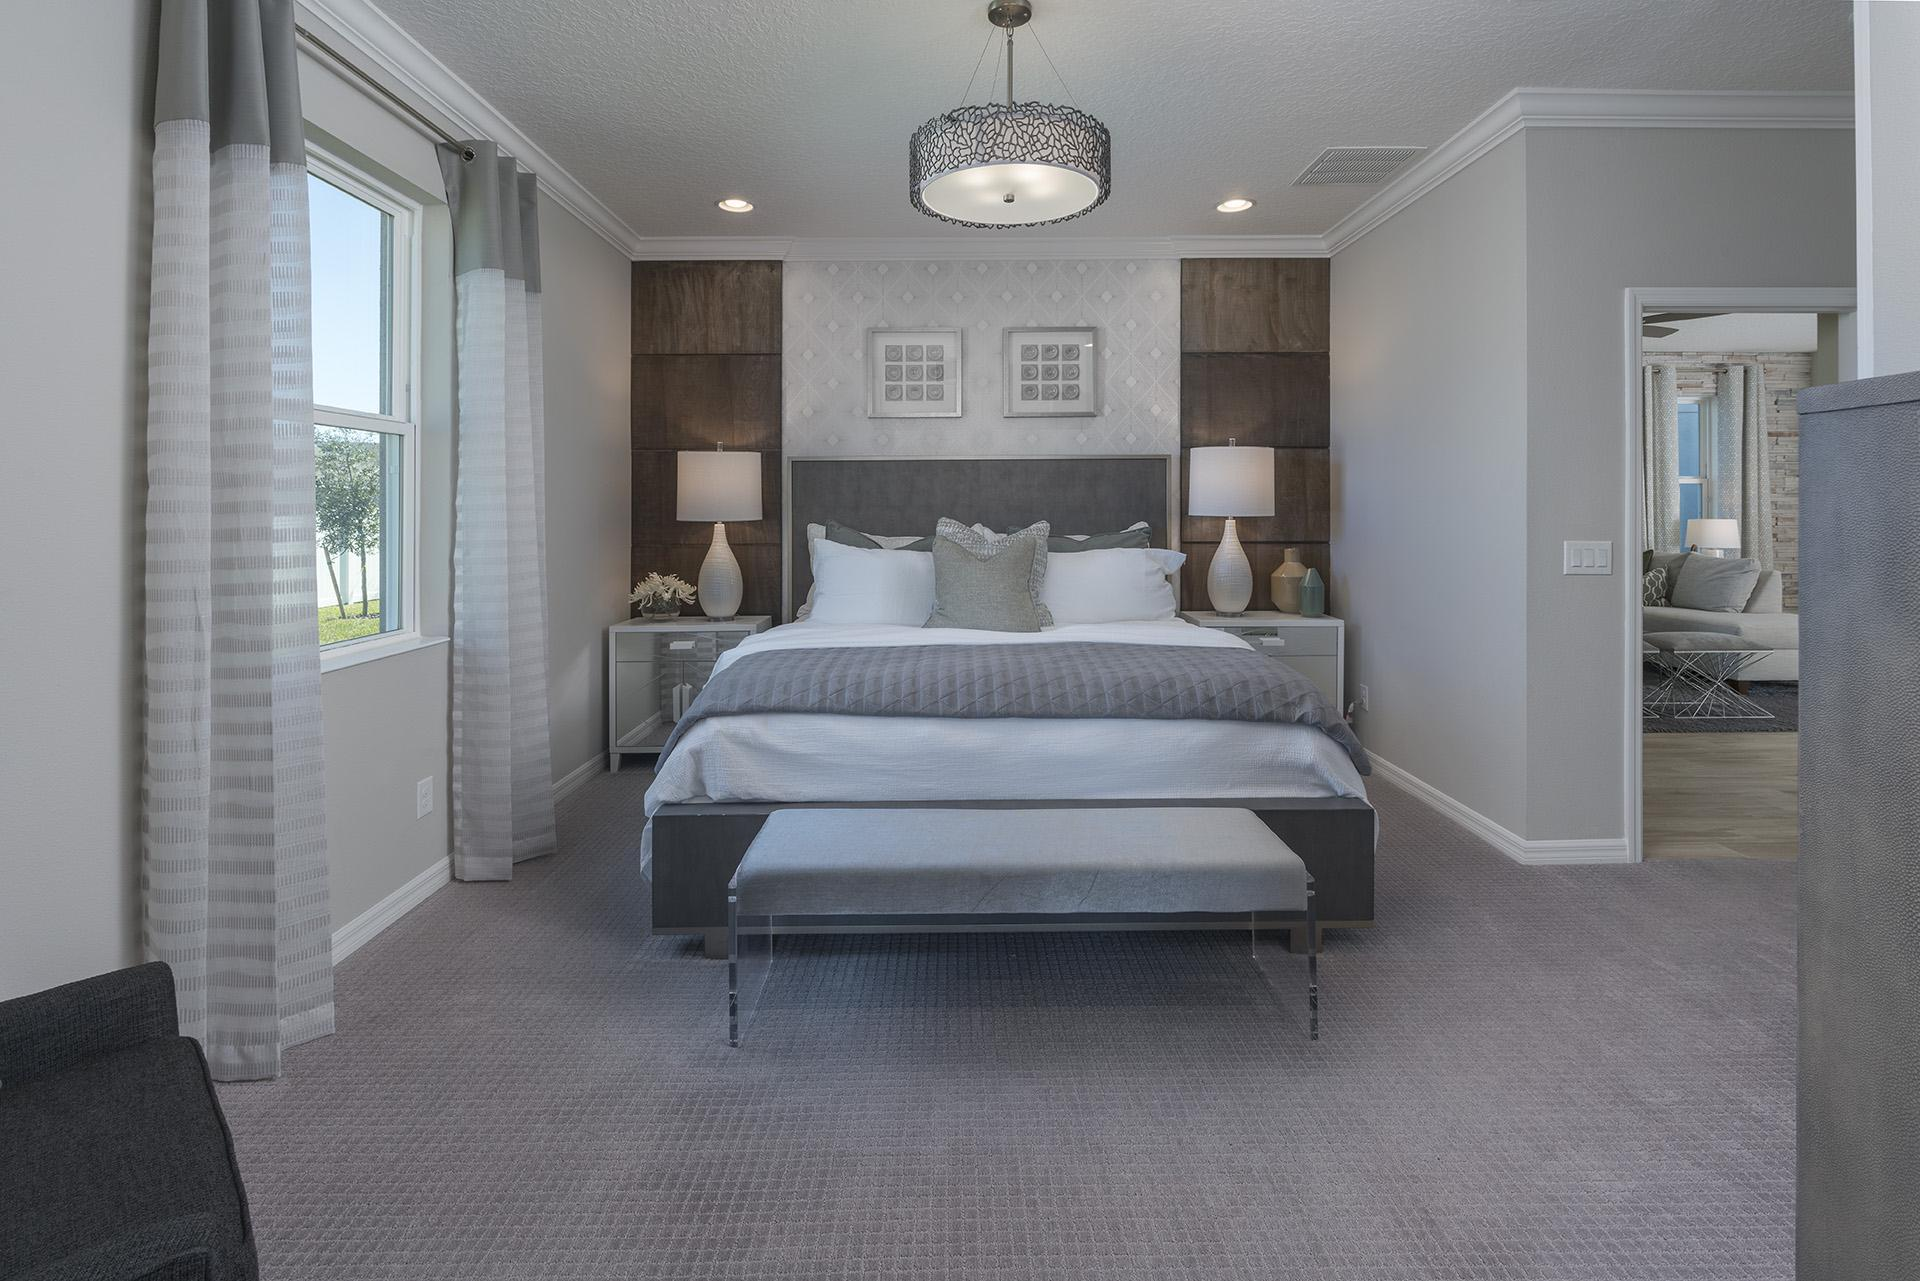 Bedroom featured in the Berkshire By Hanover Family Builders in Lakeland-Winter Haven, FL